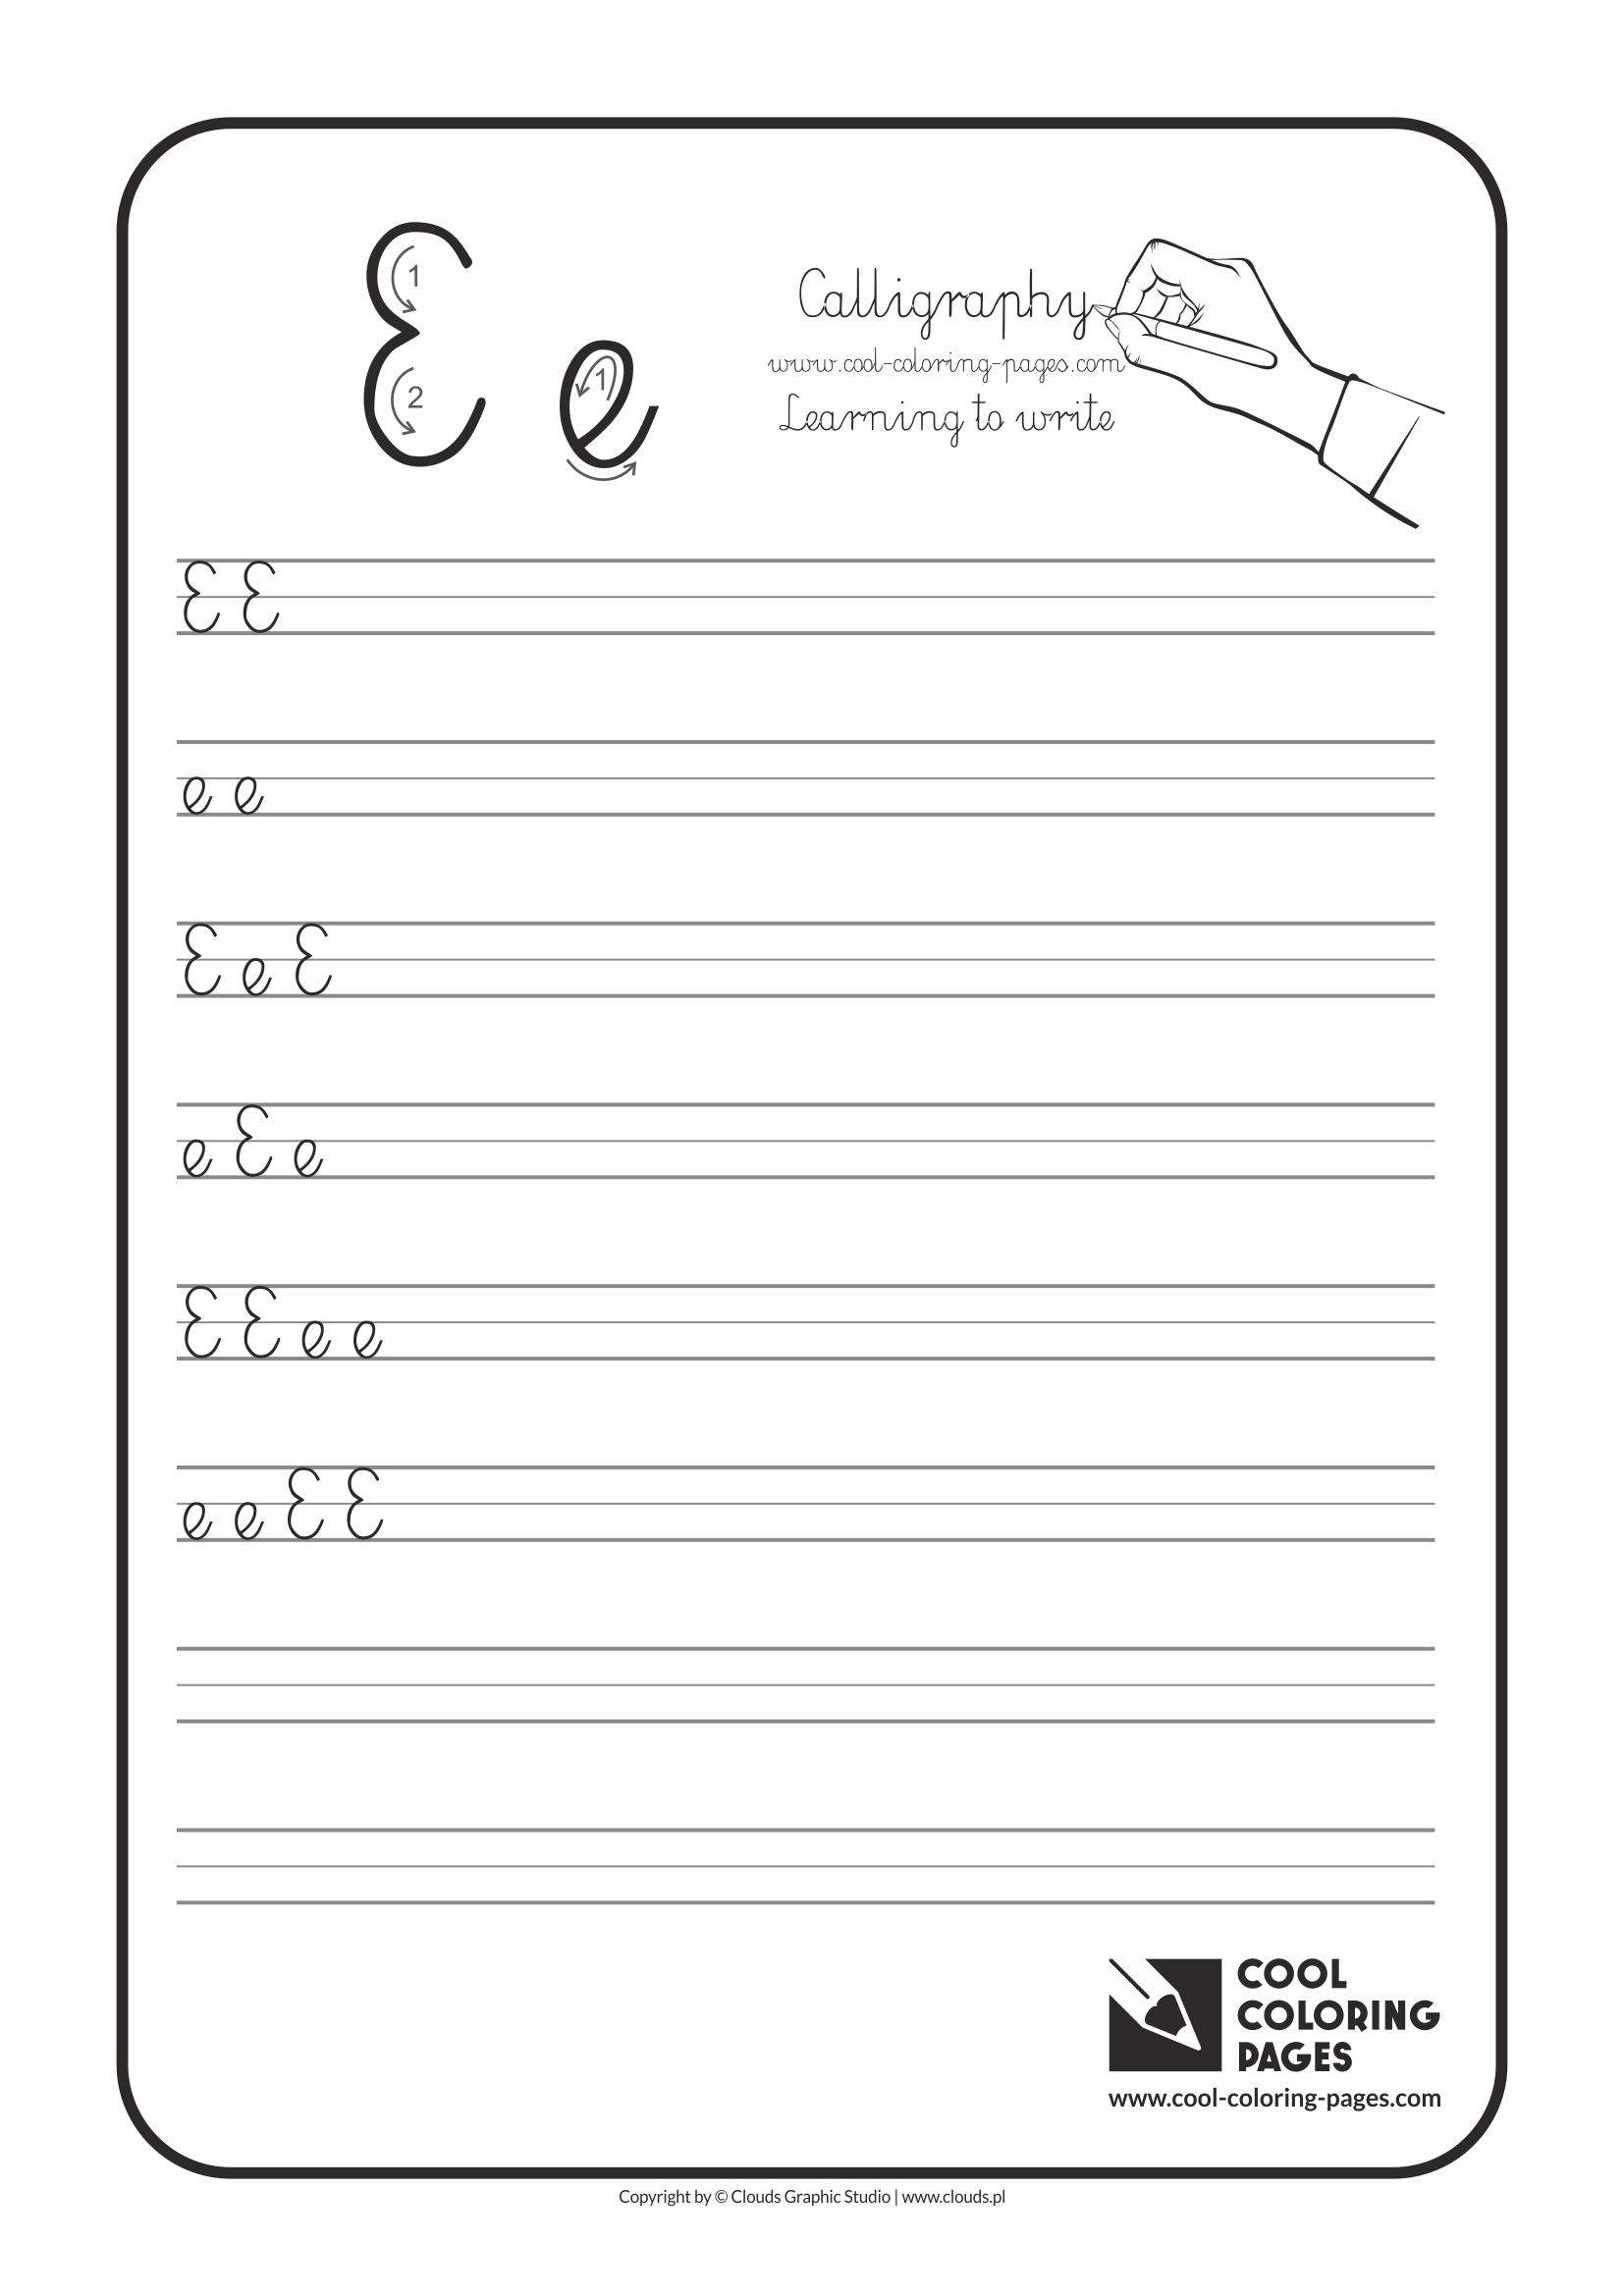 Cool Coloring Pages / Calligraphy / Letter E - Handwriting for kids / Worksheets